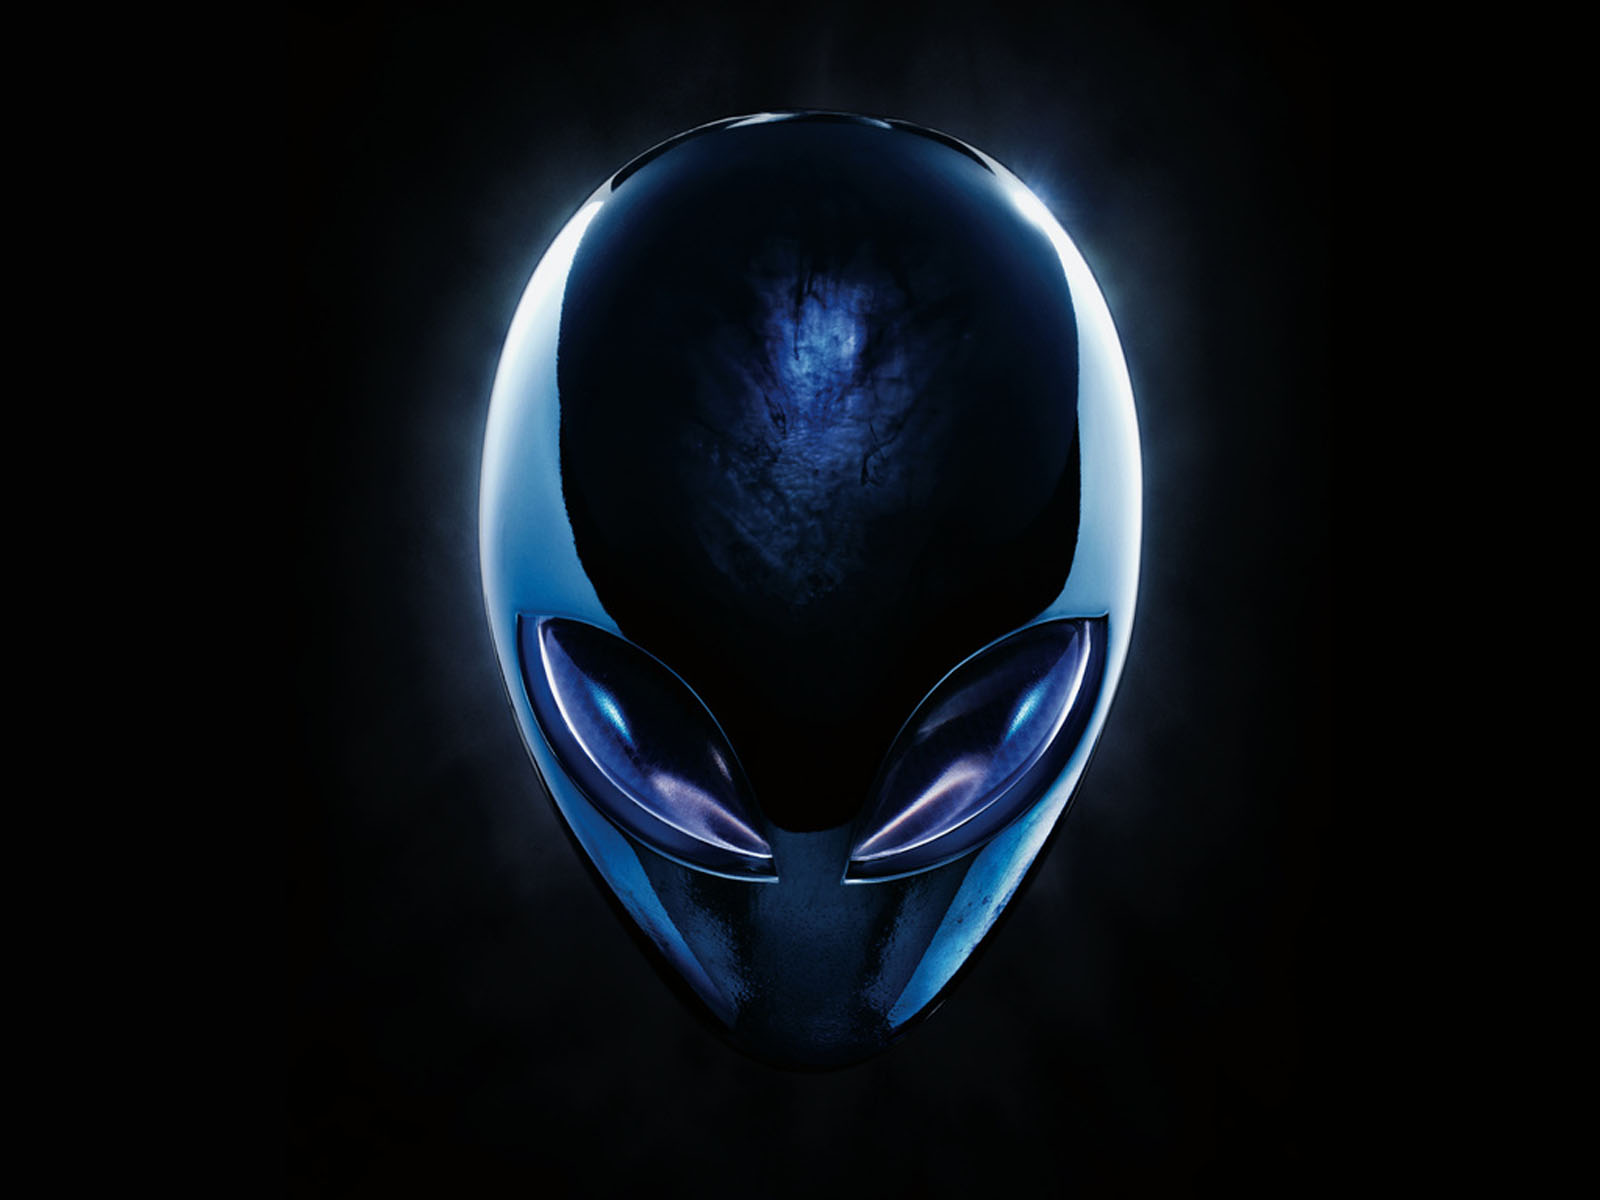 Wallpapers Alien Eyes